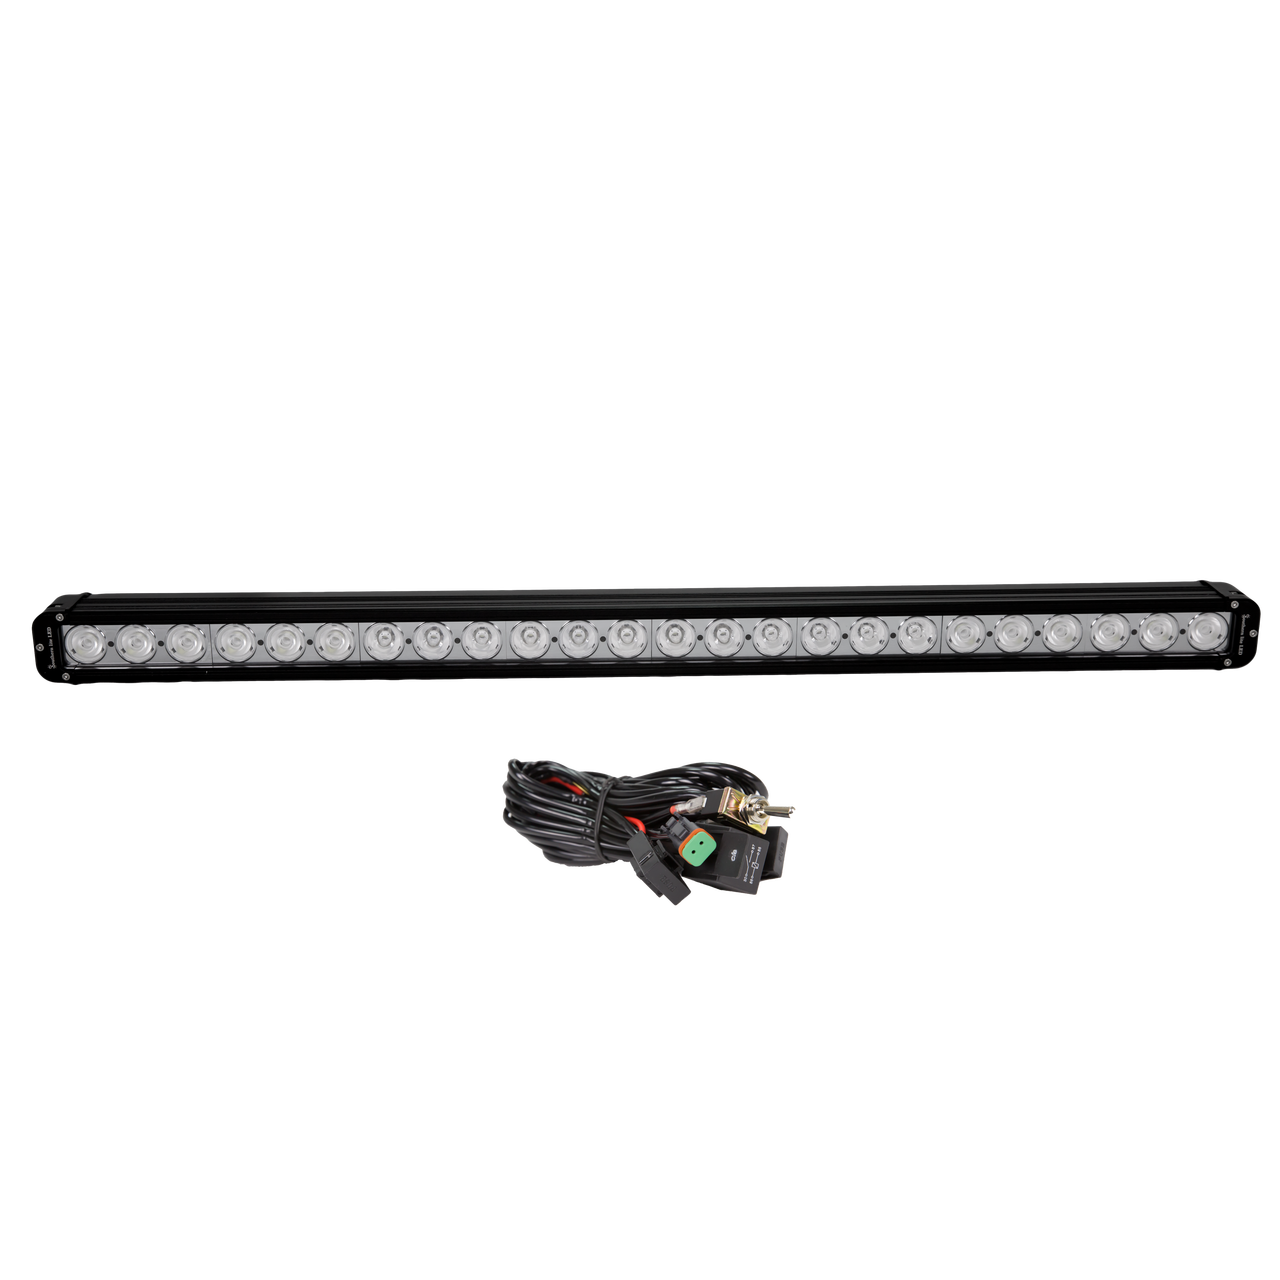 """40"""" Southern lite LED Light Bar - 240 Watts - 24,960 Lumen - Includes wiring harness and slide track mounting"""